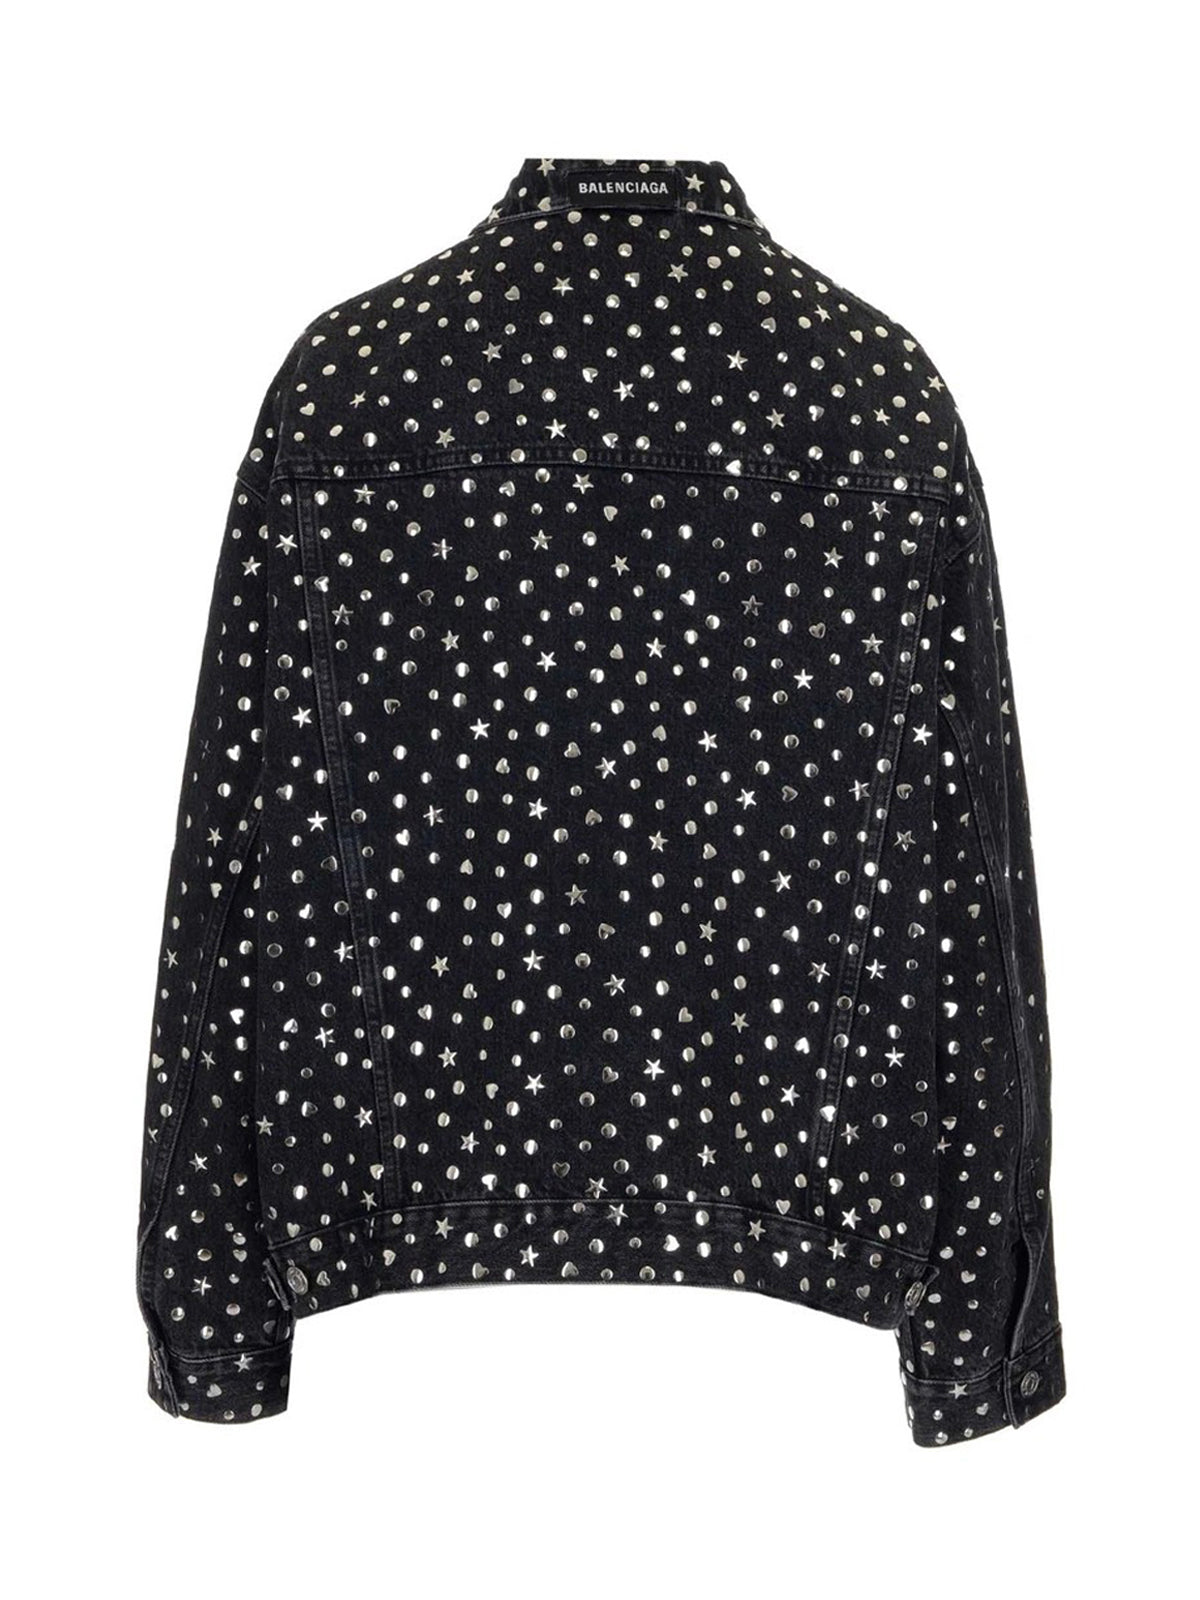 Star Studded Jacket